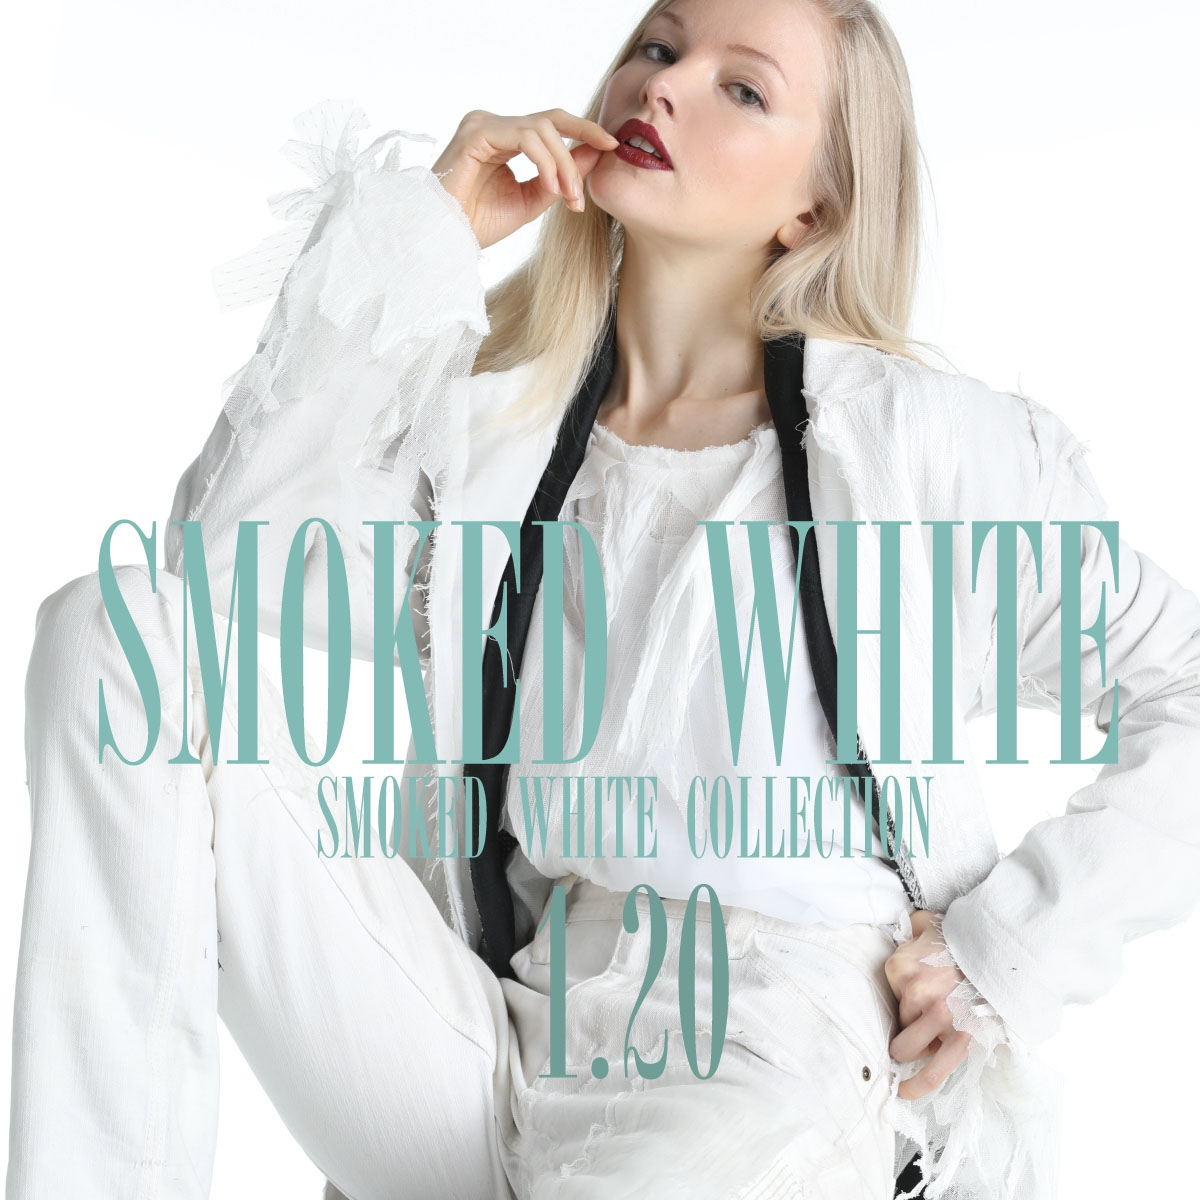 0120【SMOKED WHITE COLLECTION】